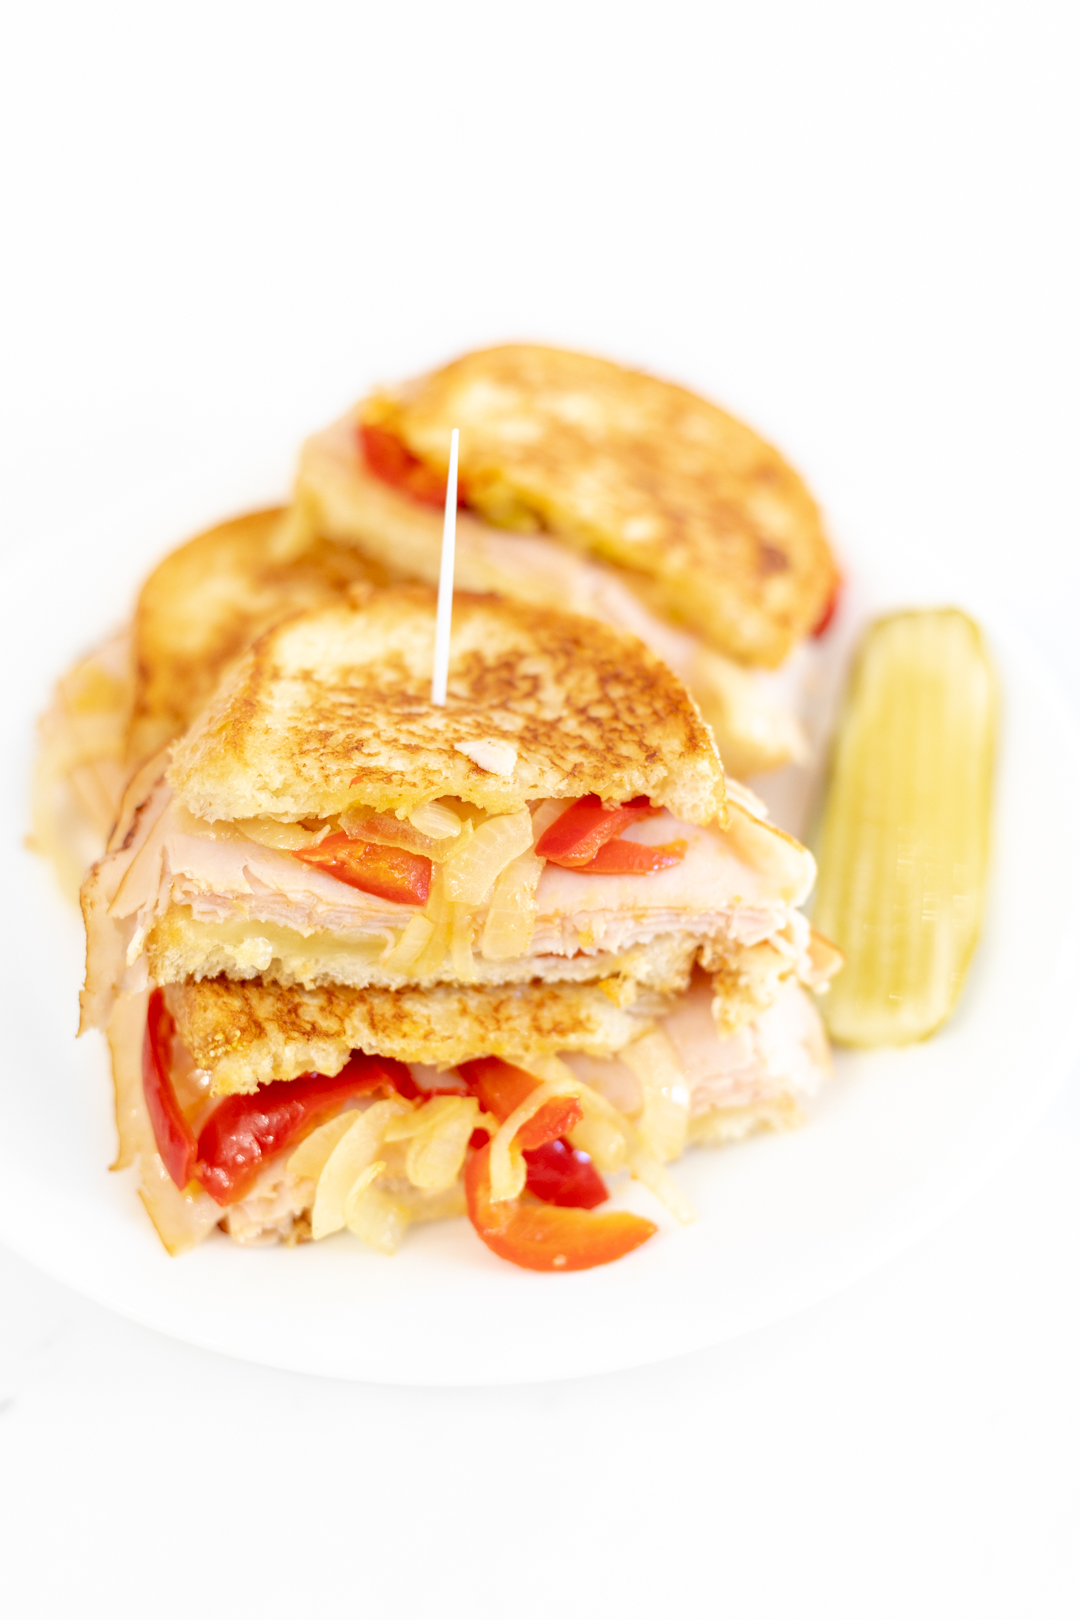 grilled sandwich with cheese, turkey, peppers and onions